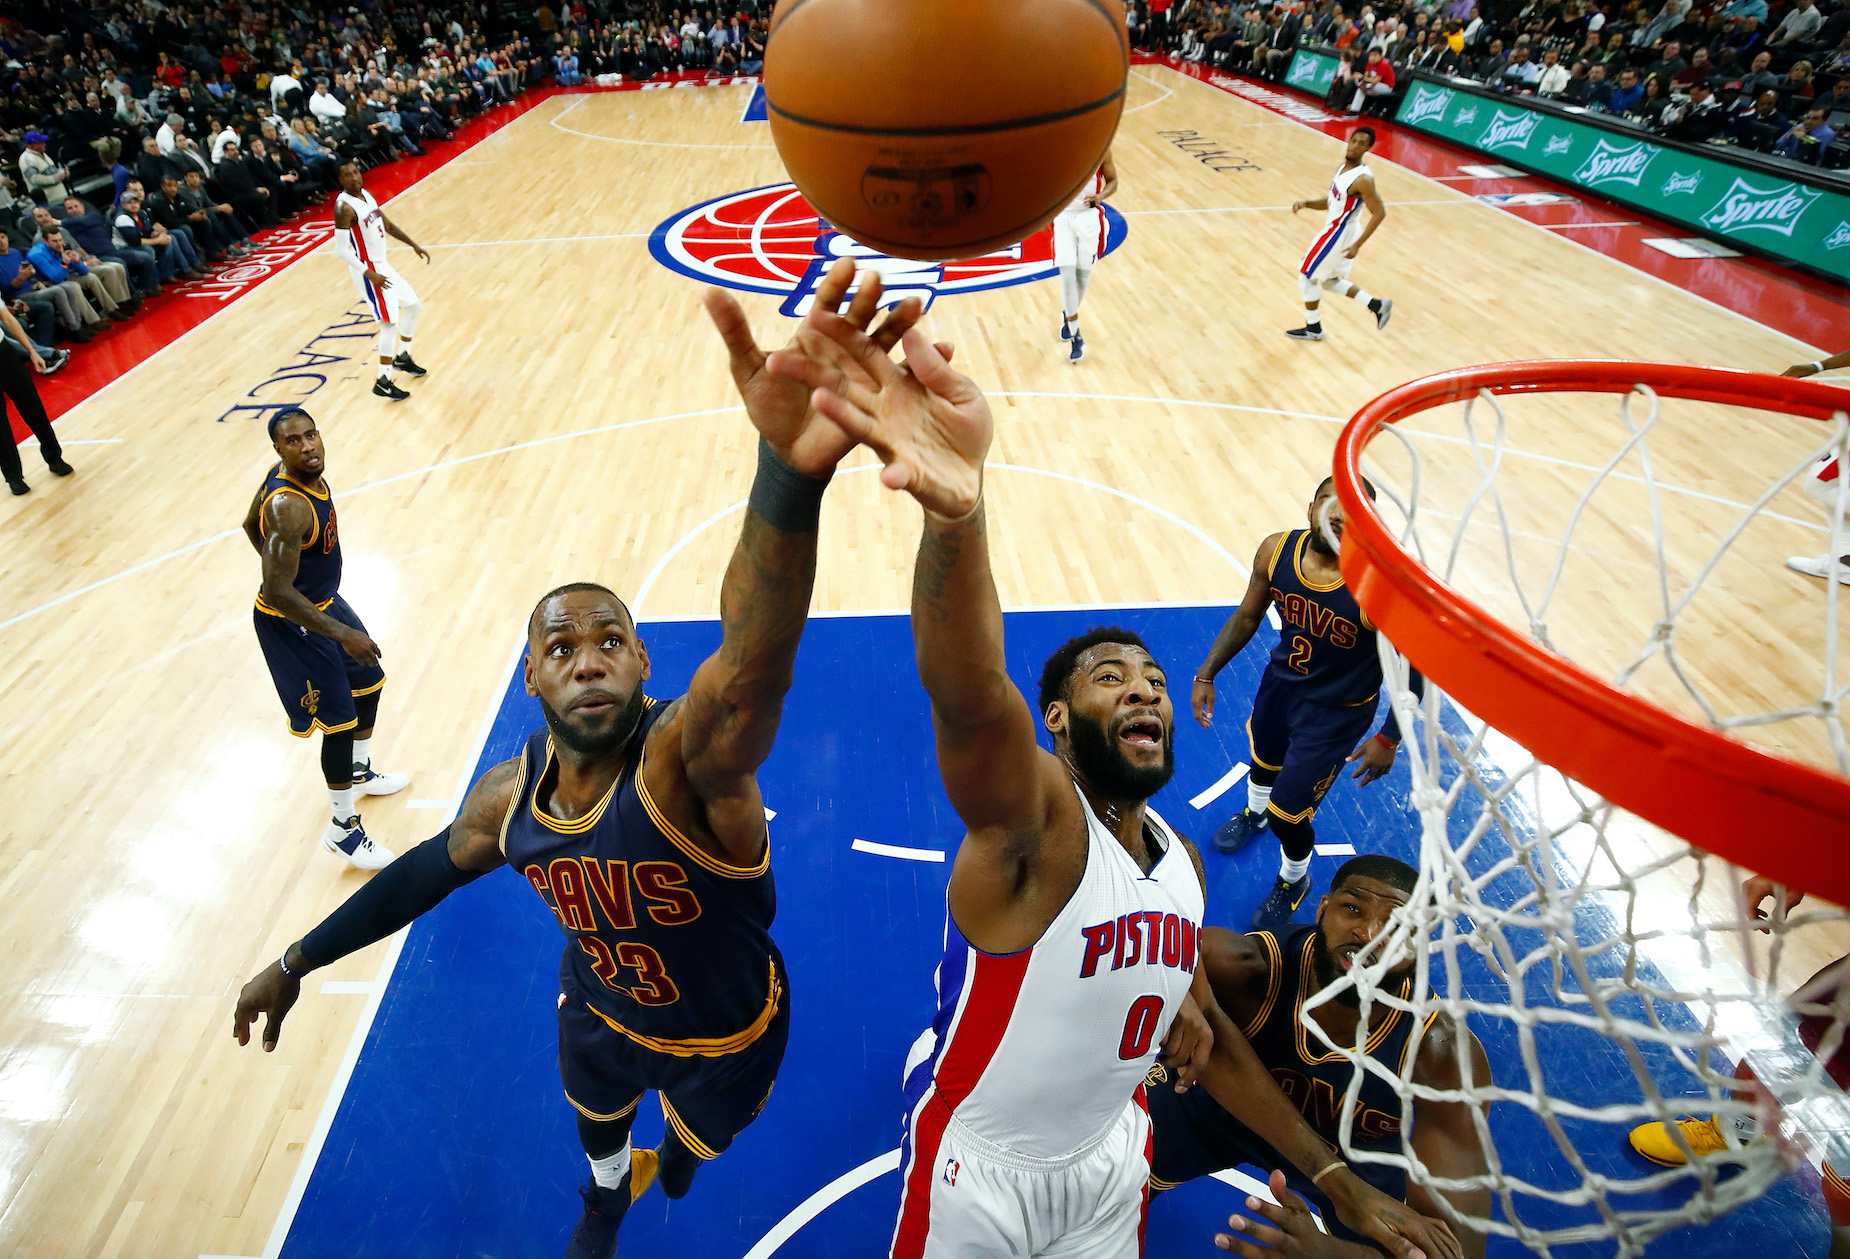 Andre Drummond and LeBron James, who are now LA Lakers teammates, battle for a rebound in 2017